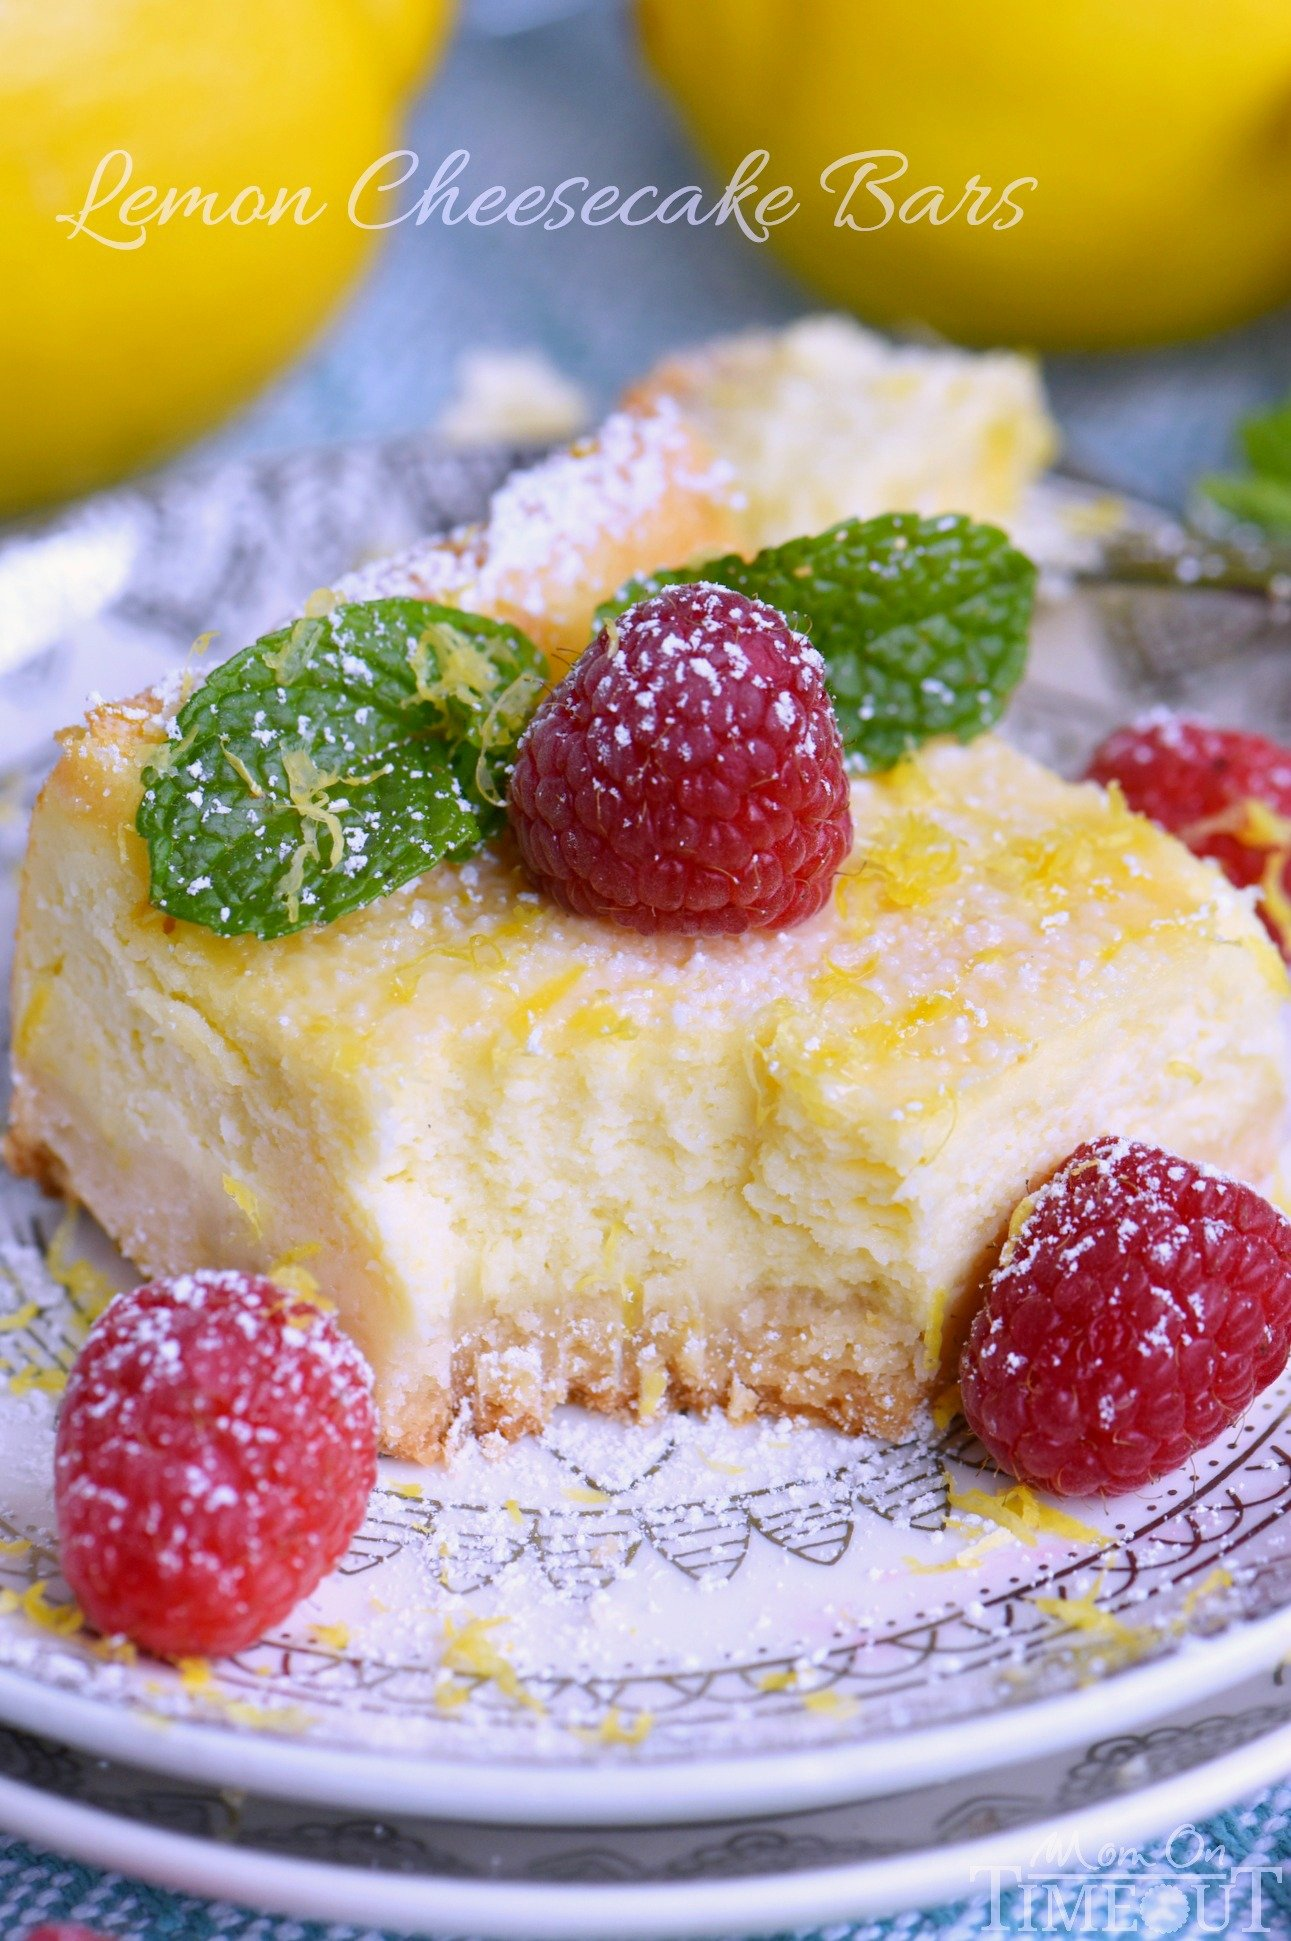 My Aunt Pam's Lemon Cheesecake Bars are made with lots of fresh lemon ...